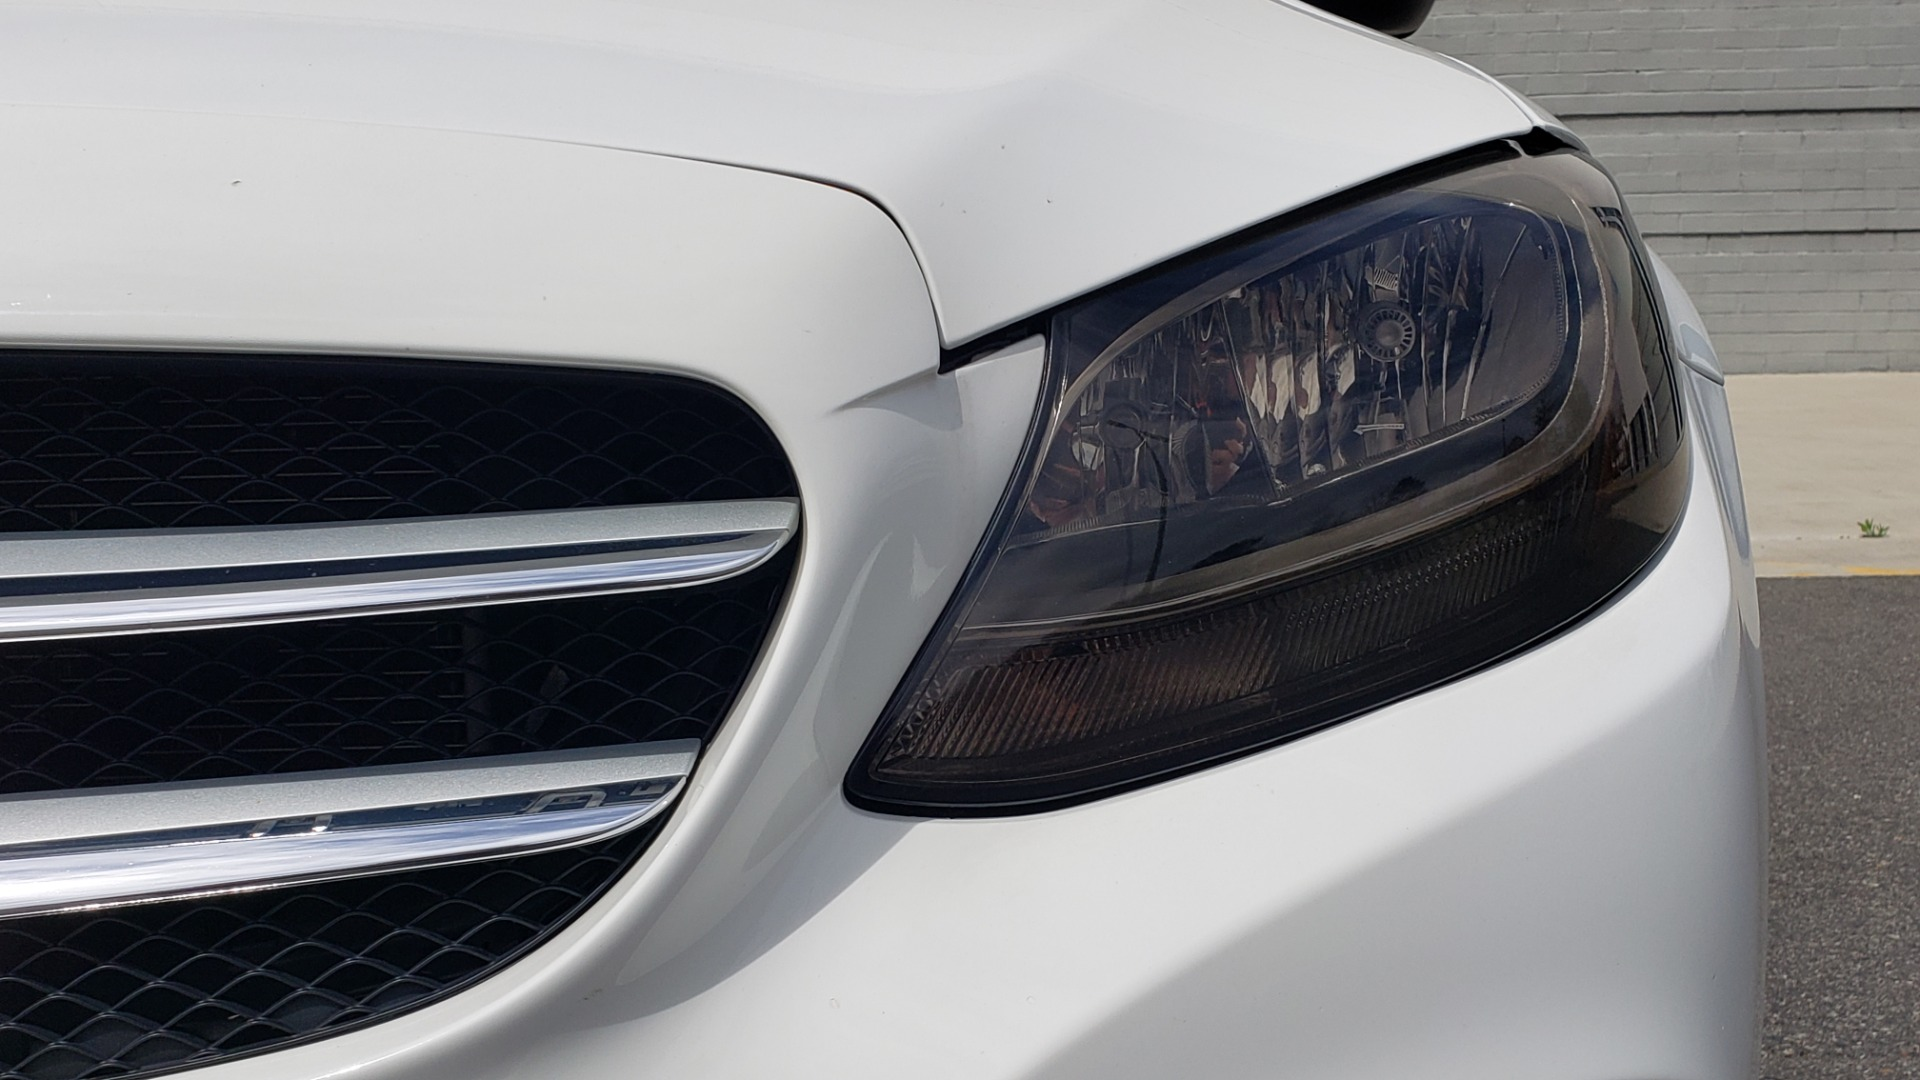 Used 2018 Mercedes-Benz C-CLASS C 300 4MATIC PREMIUM / HTD STS / PANO-ROOF / REARVIEW for sale Sold at Formula Imports in Charlotte NC 28227 21